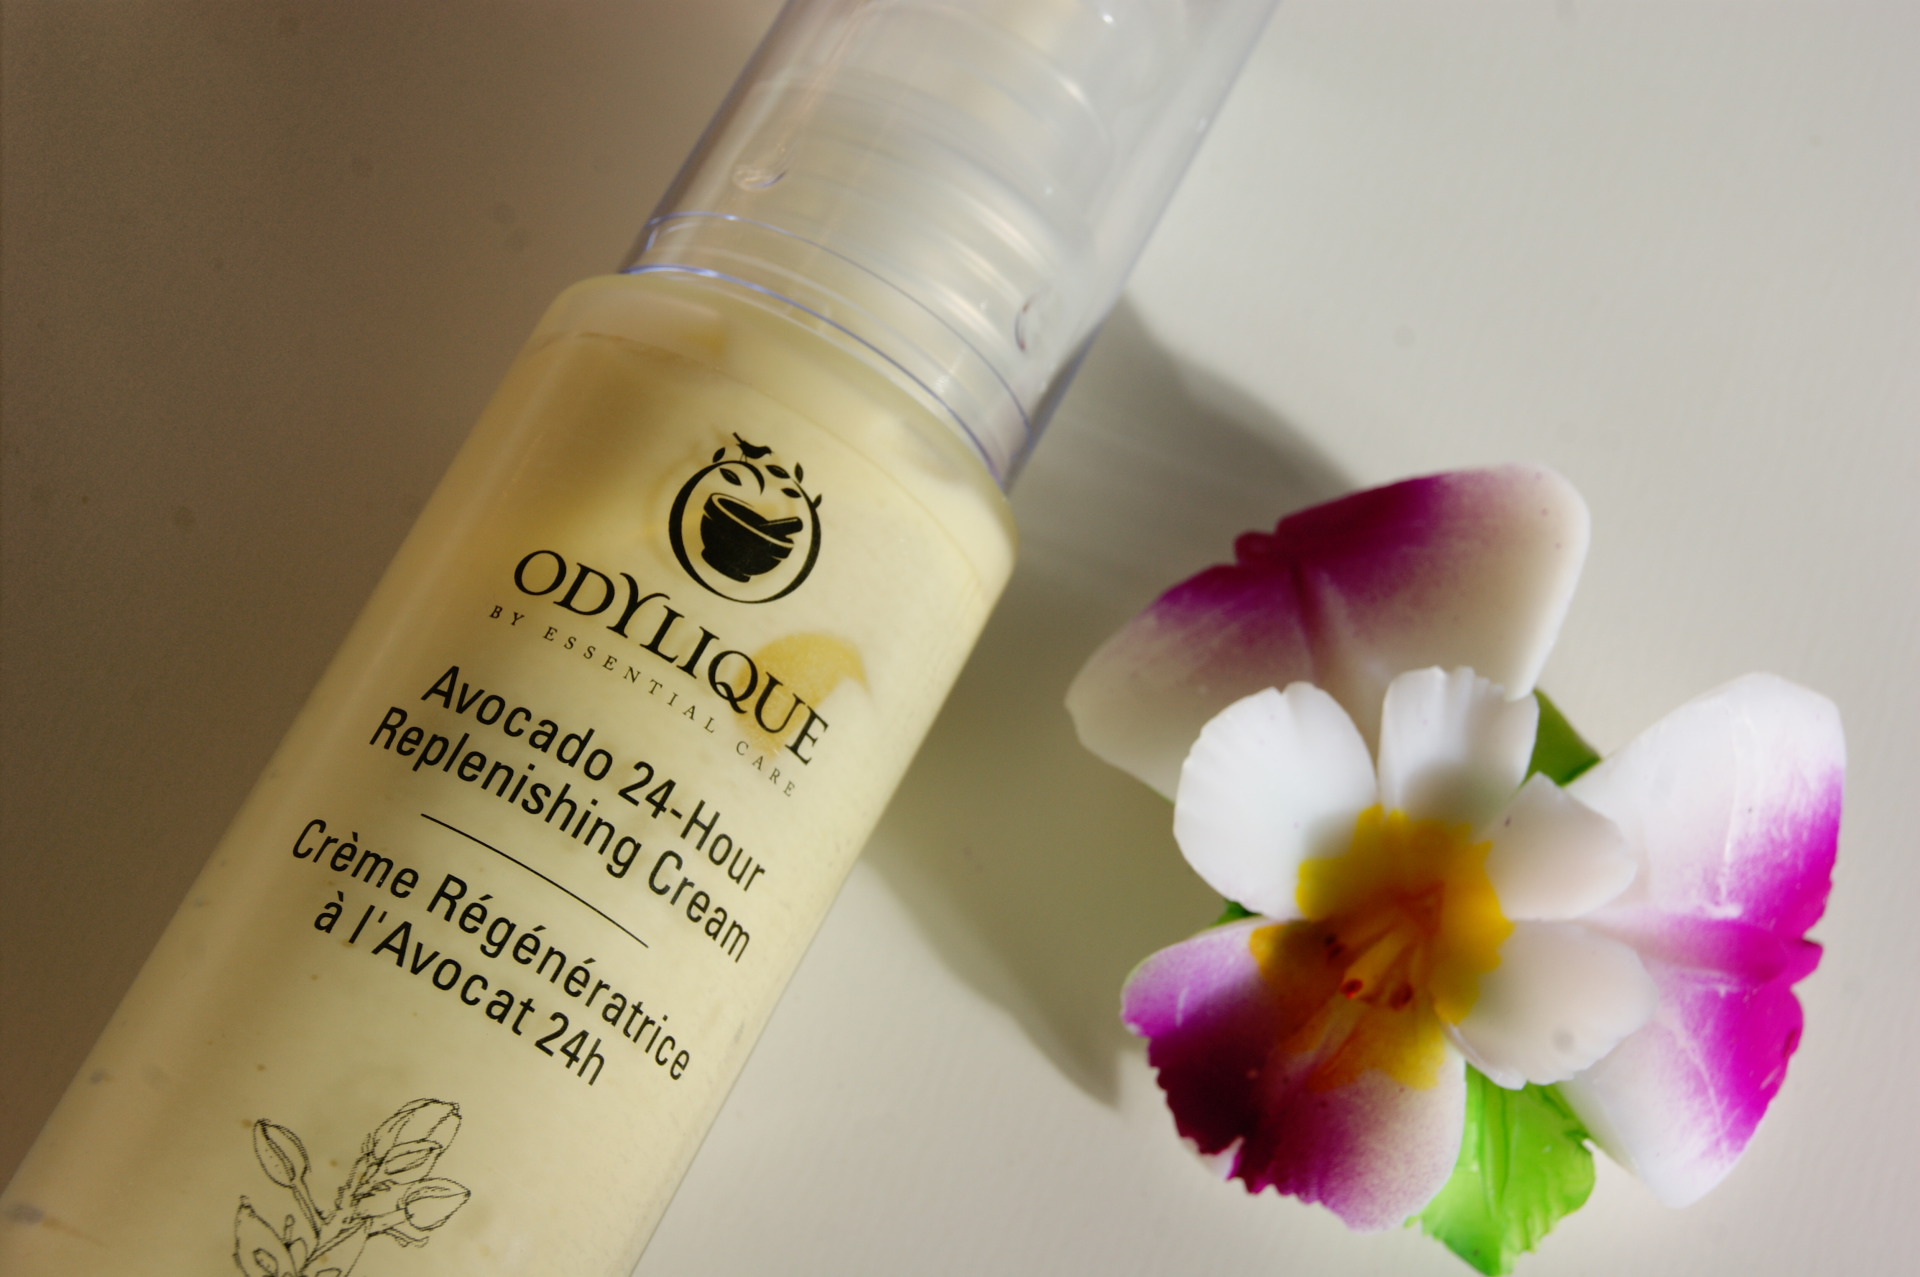 Odylique - Avocado Replenishing Cream